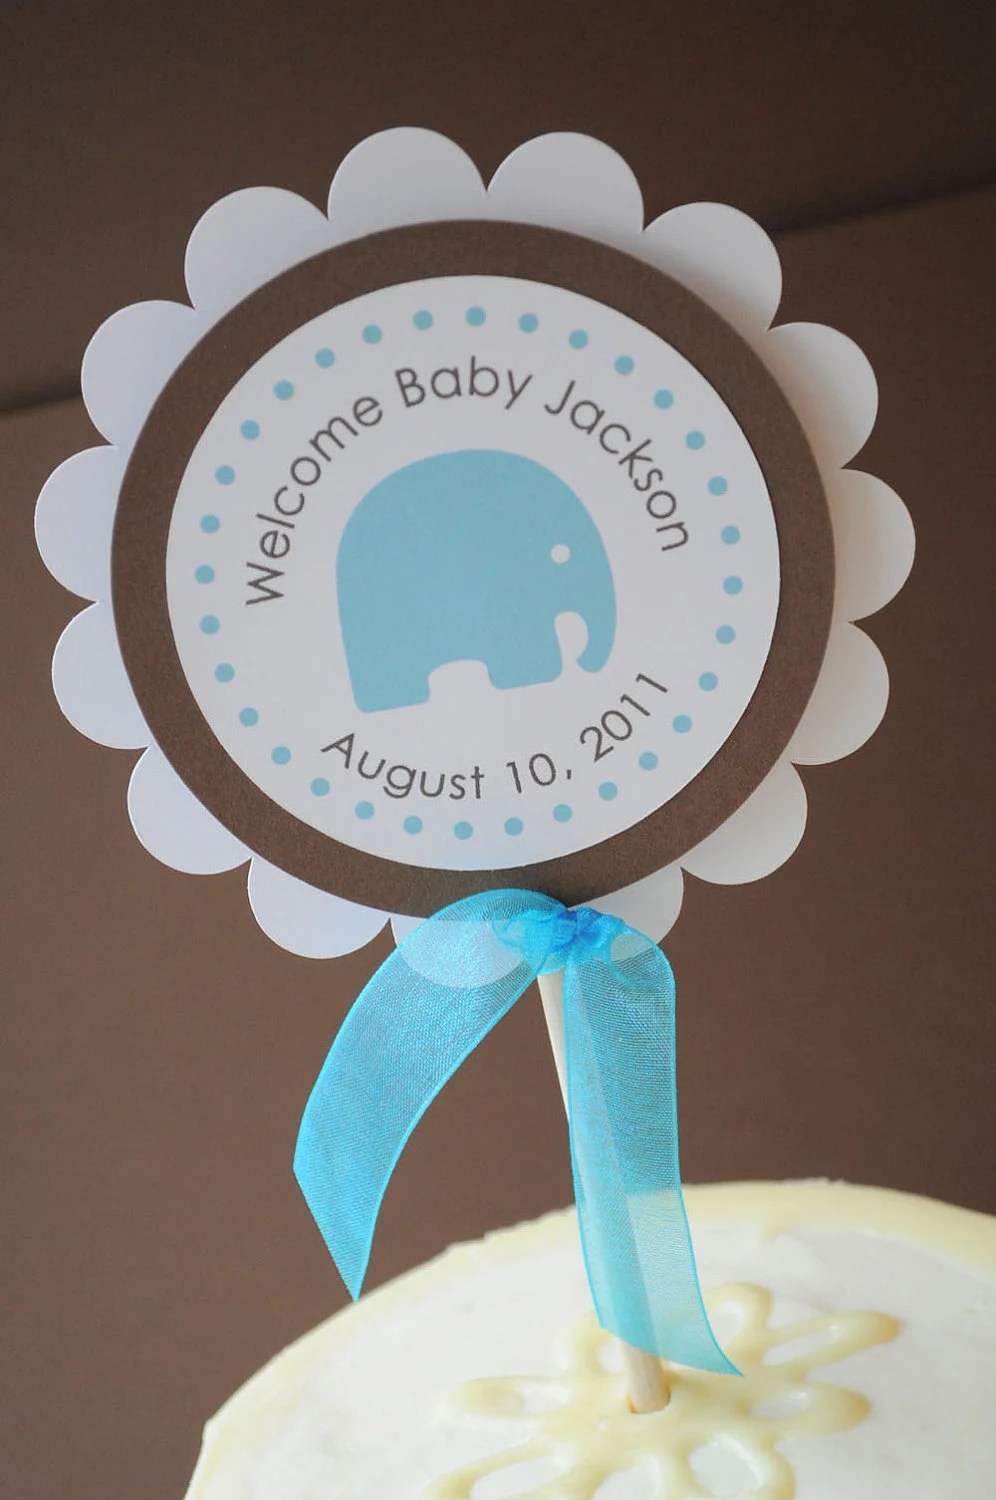 Best Boy Baby Shower Cake Topper Elephant Theme Personalized With This Month